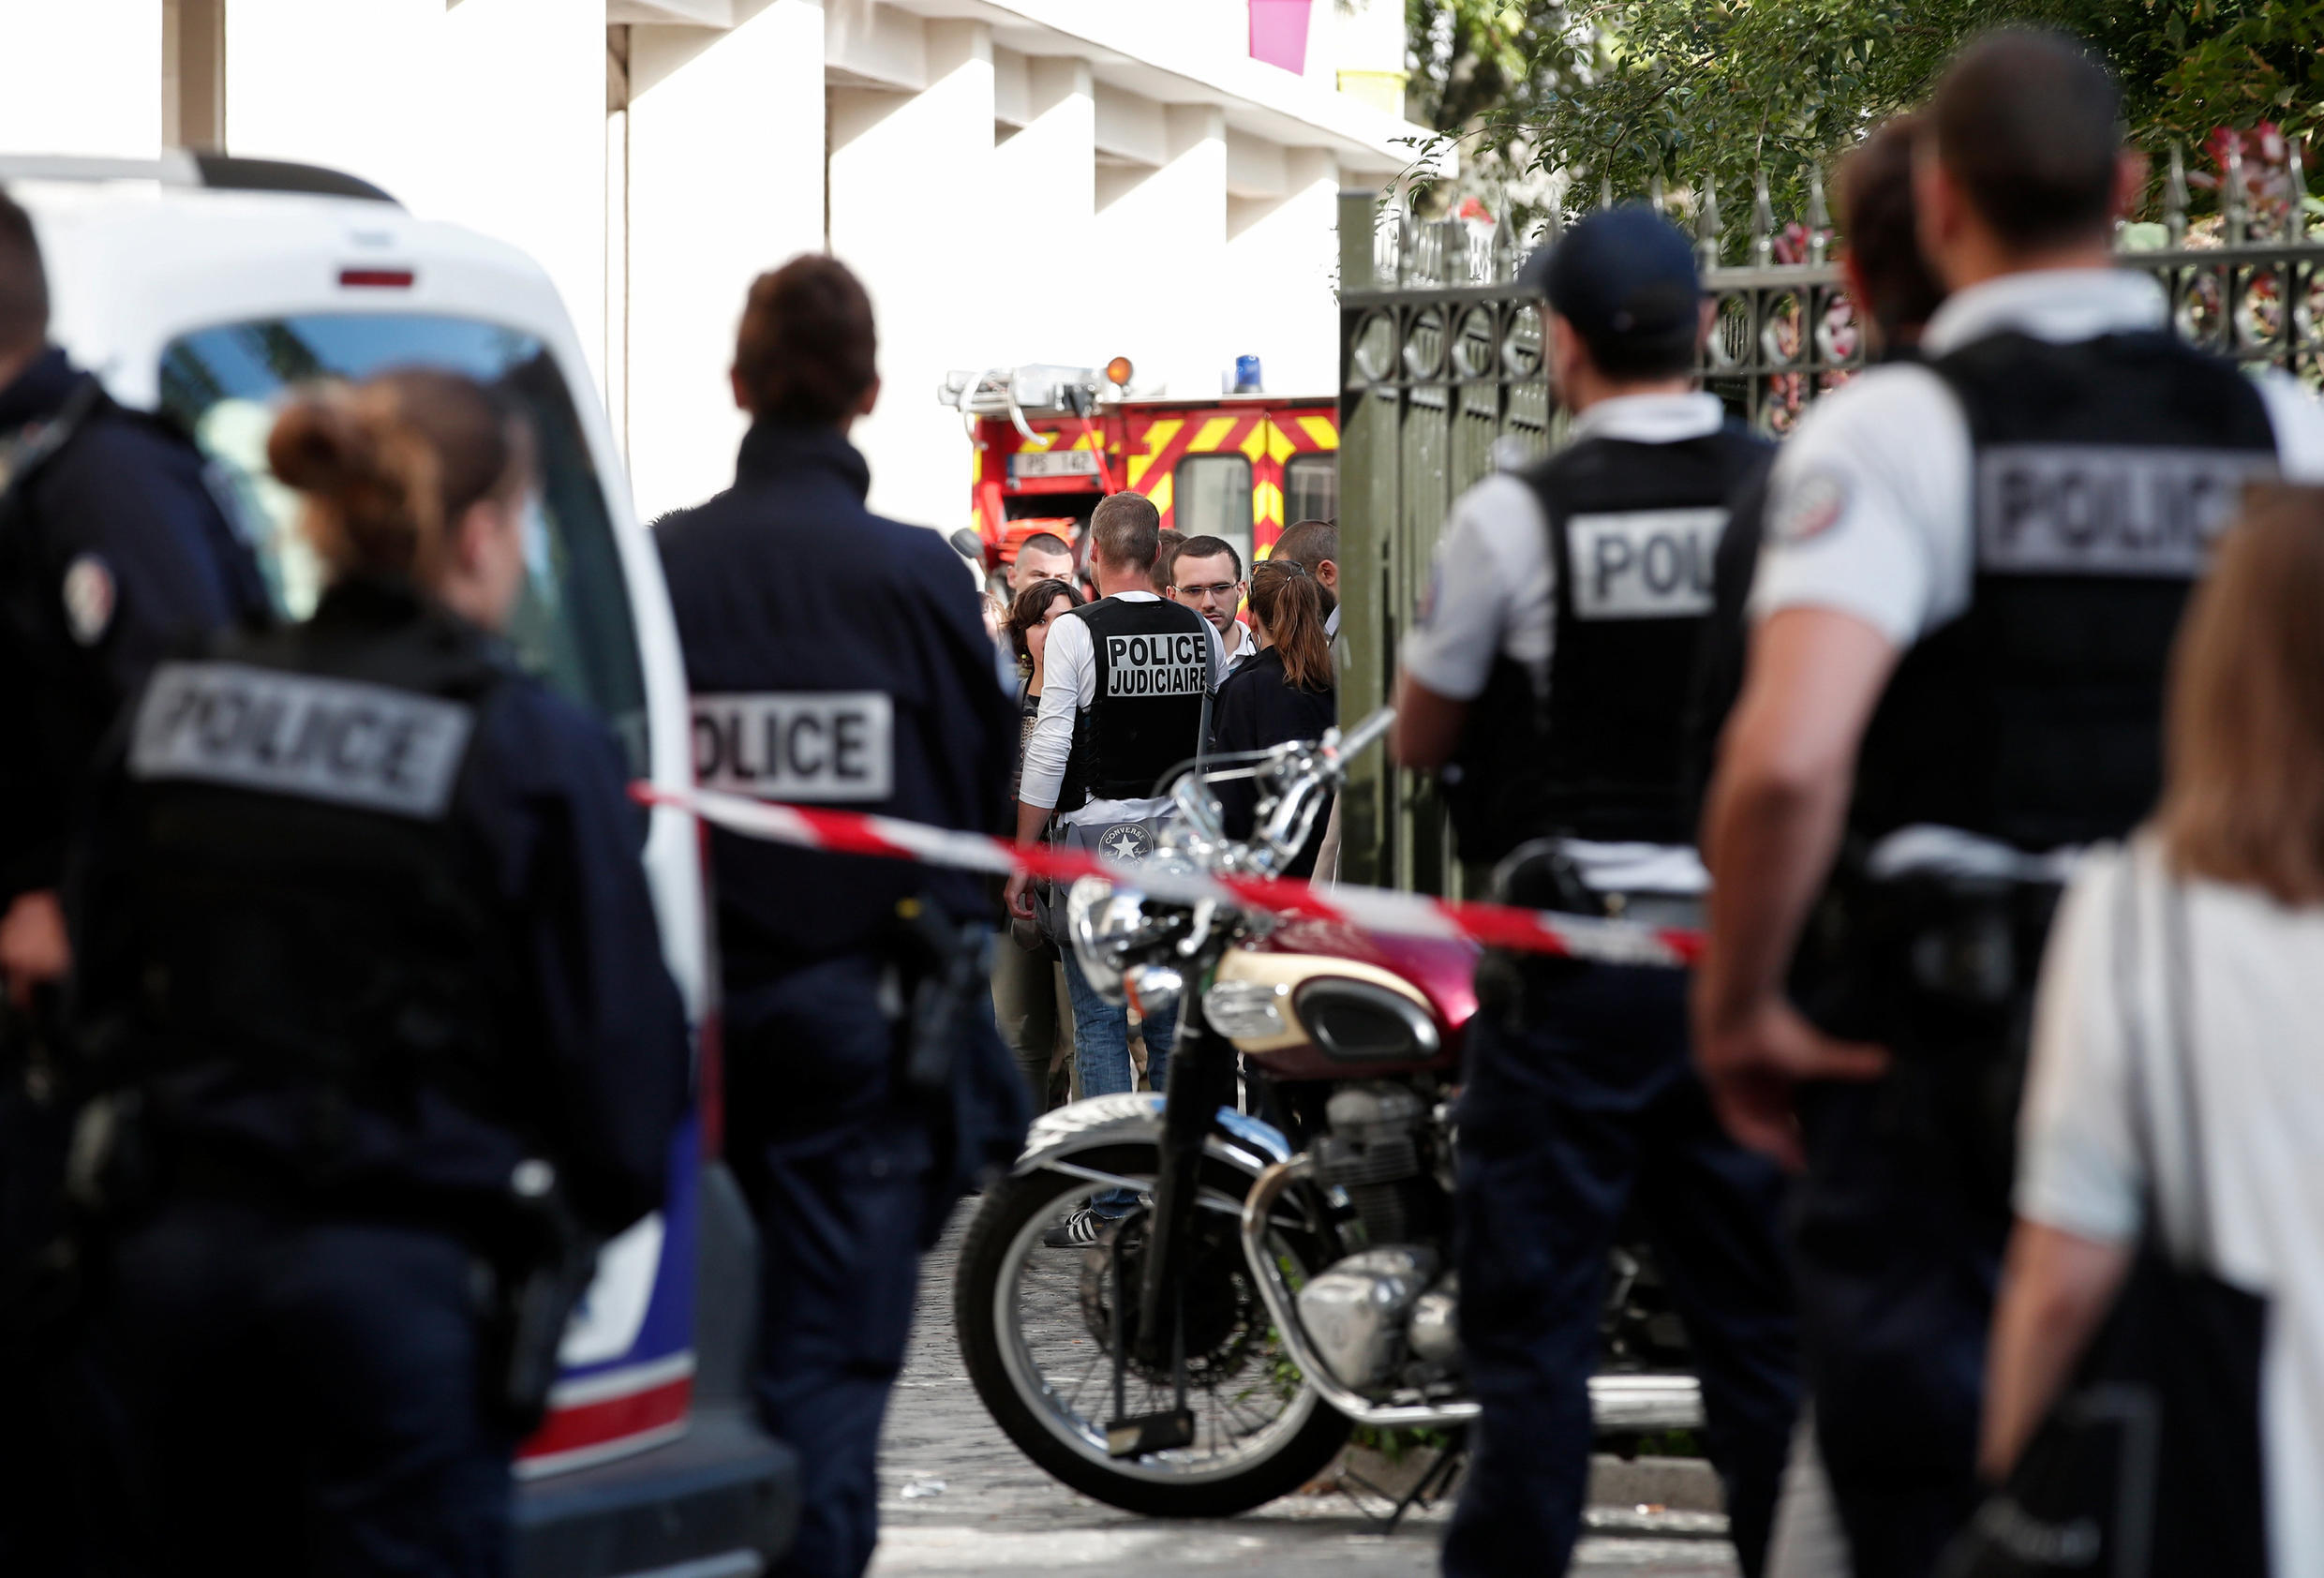 Police secure the scene where French soliders were hit and injured by a vehicle in the western Paris suburb of Levallois-Perret, France, August 9, 2017.